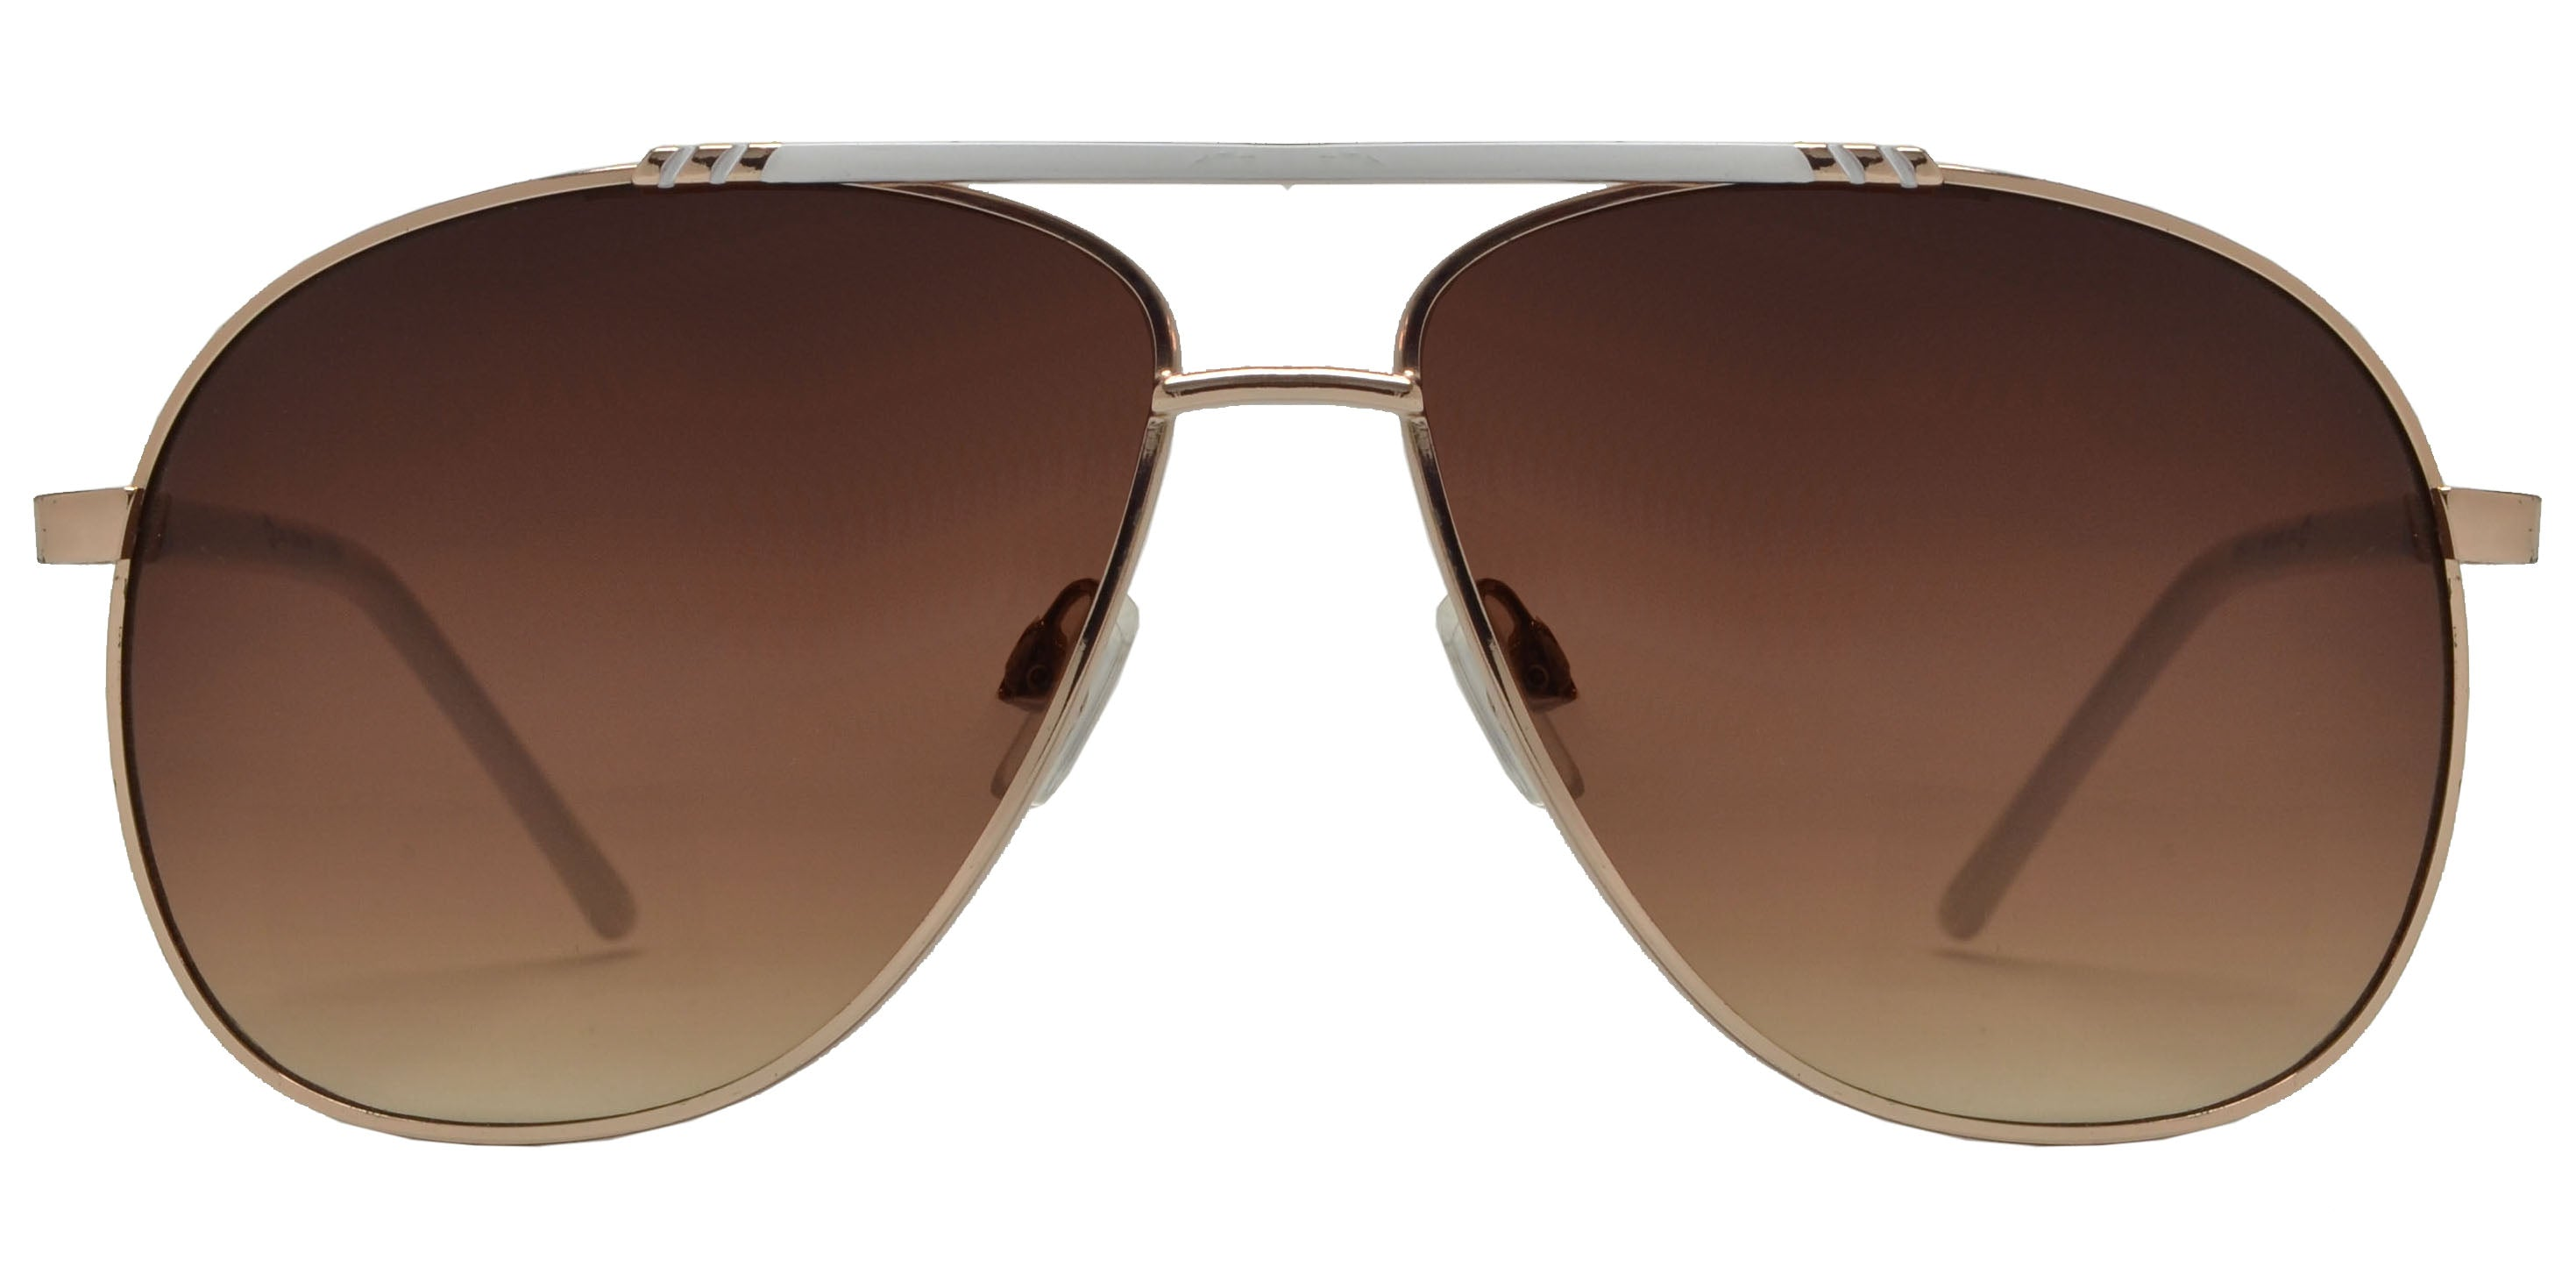 OX 2861 - Classic Aviator with Brow Bar Metal Sunglasses